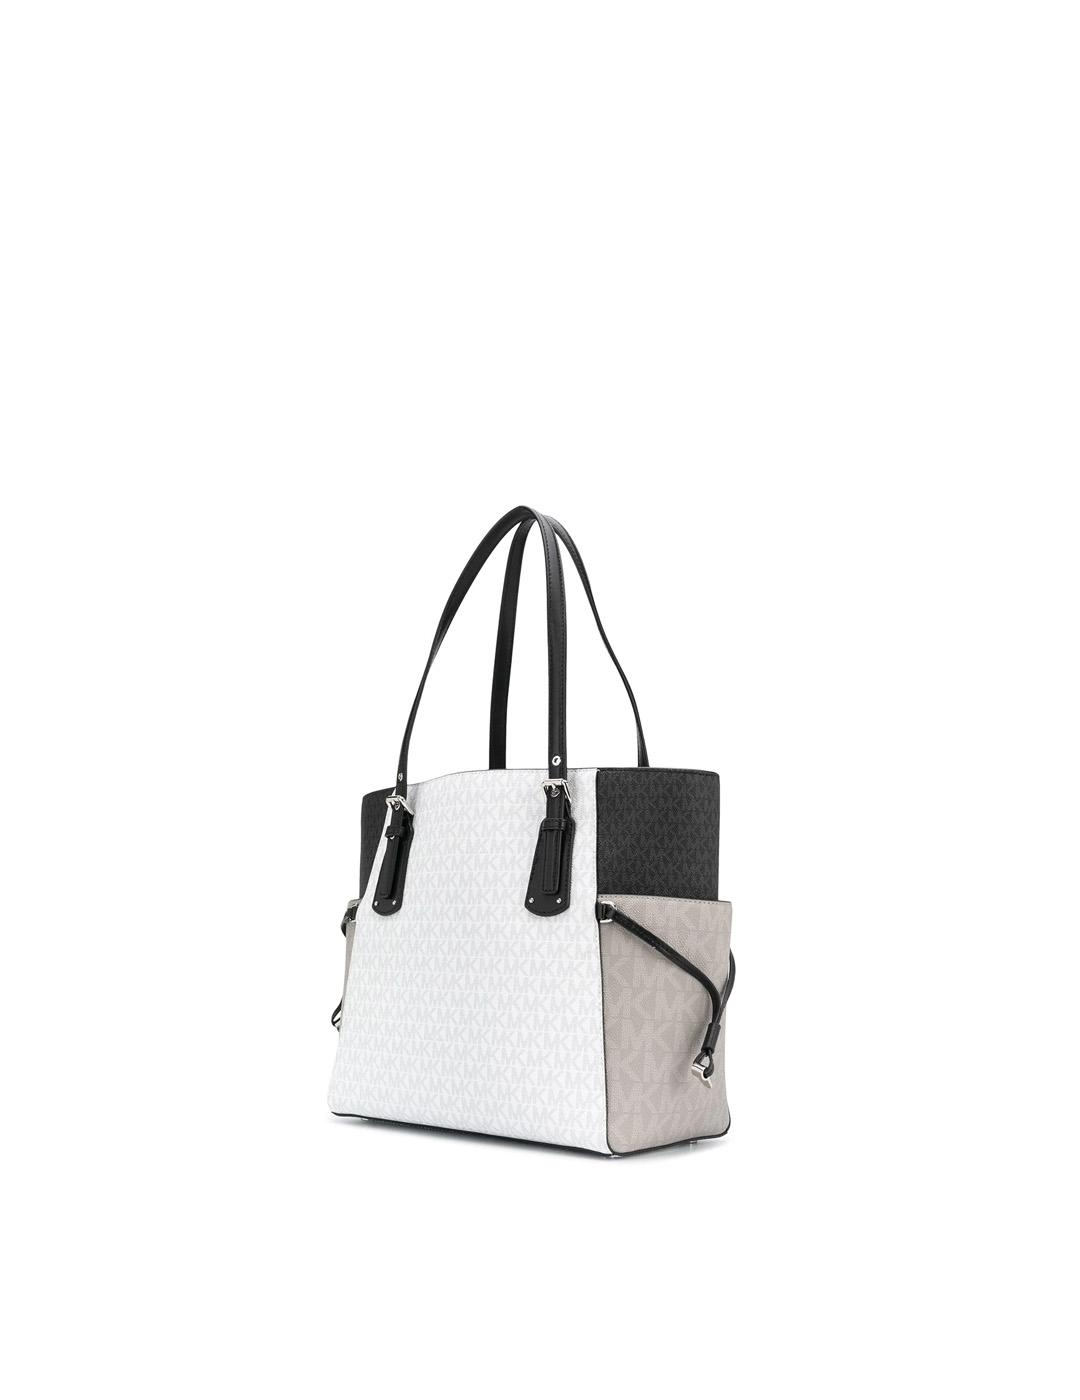 Bolso Michael Kors gris y negro Voyager colour-block Tote